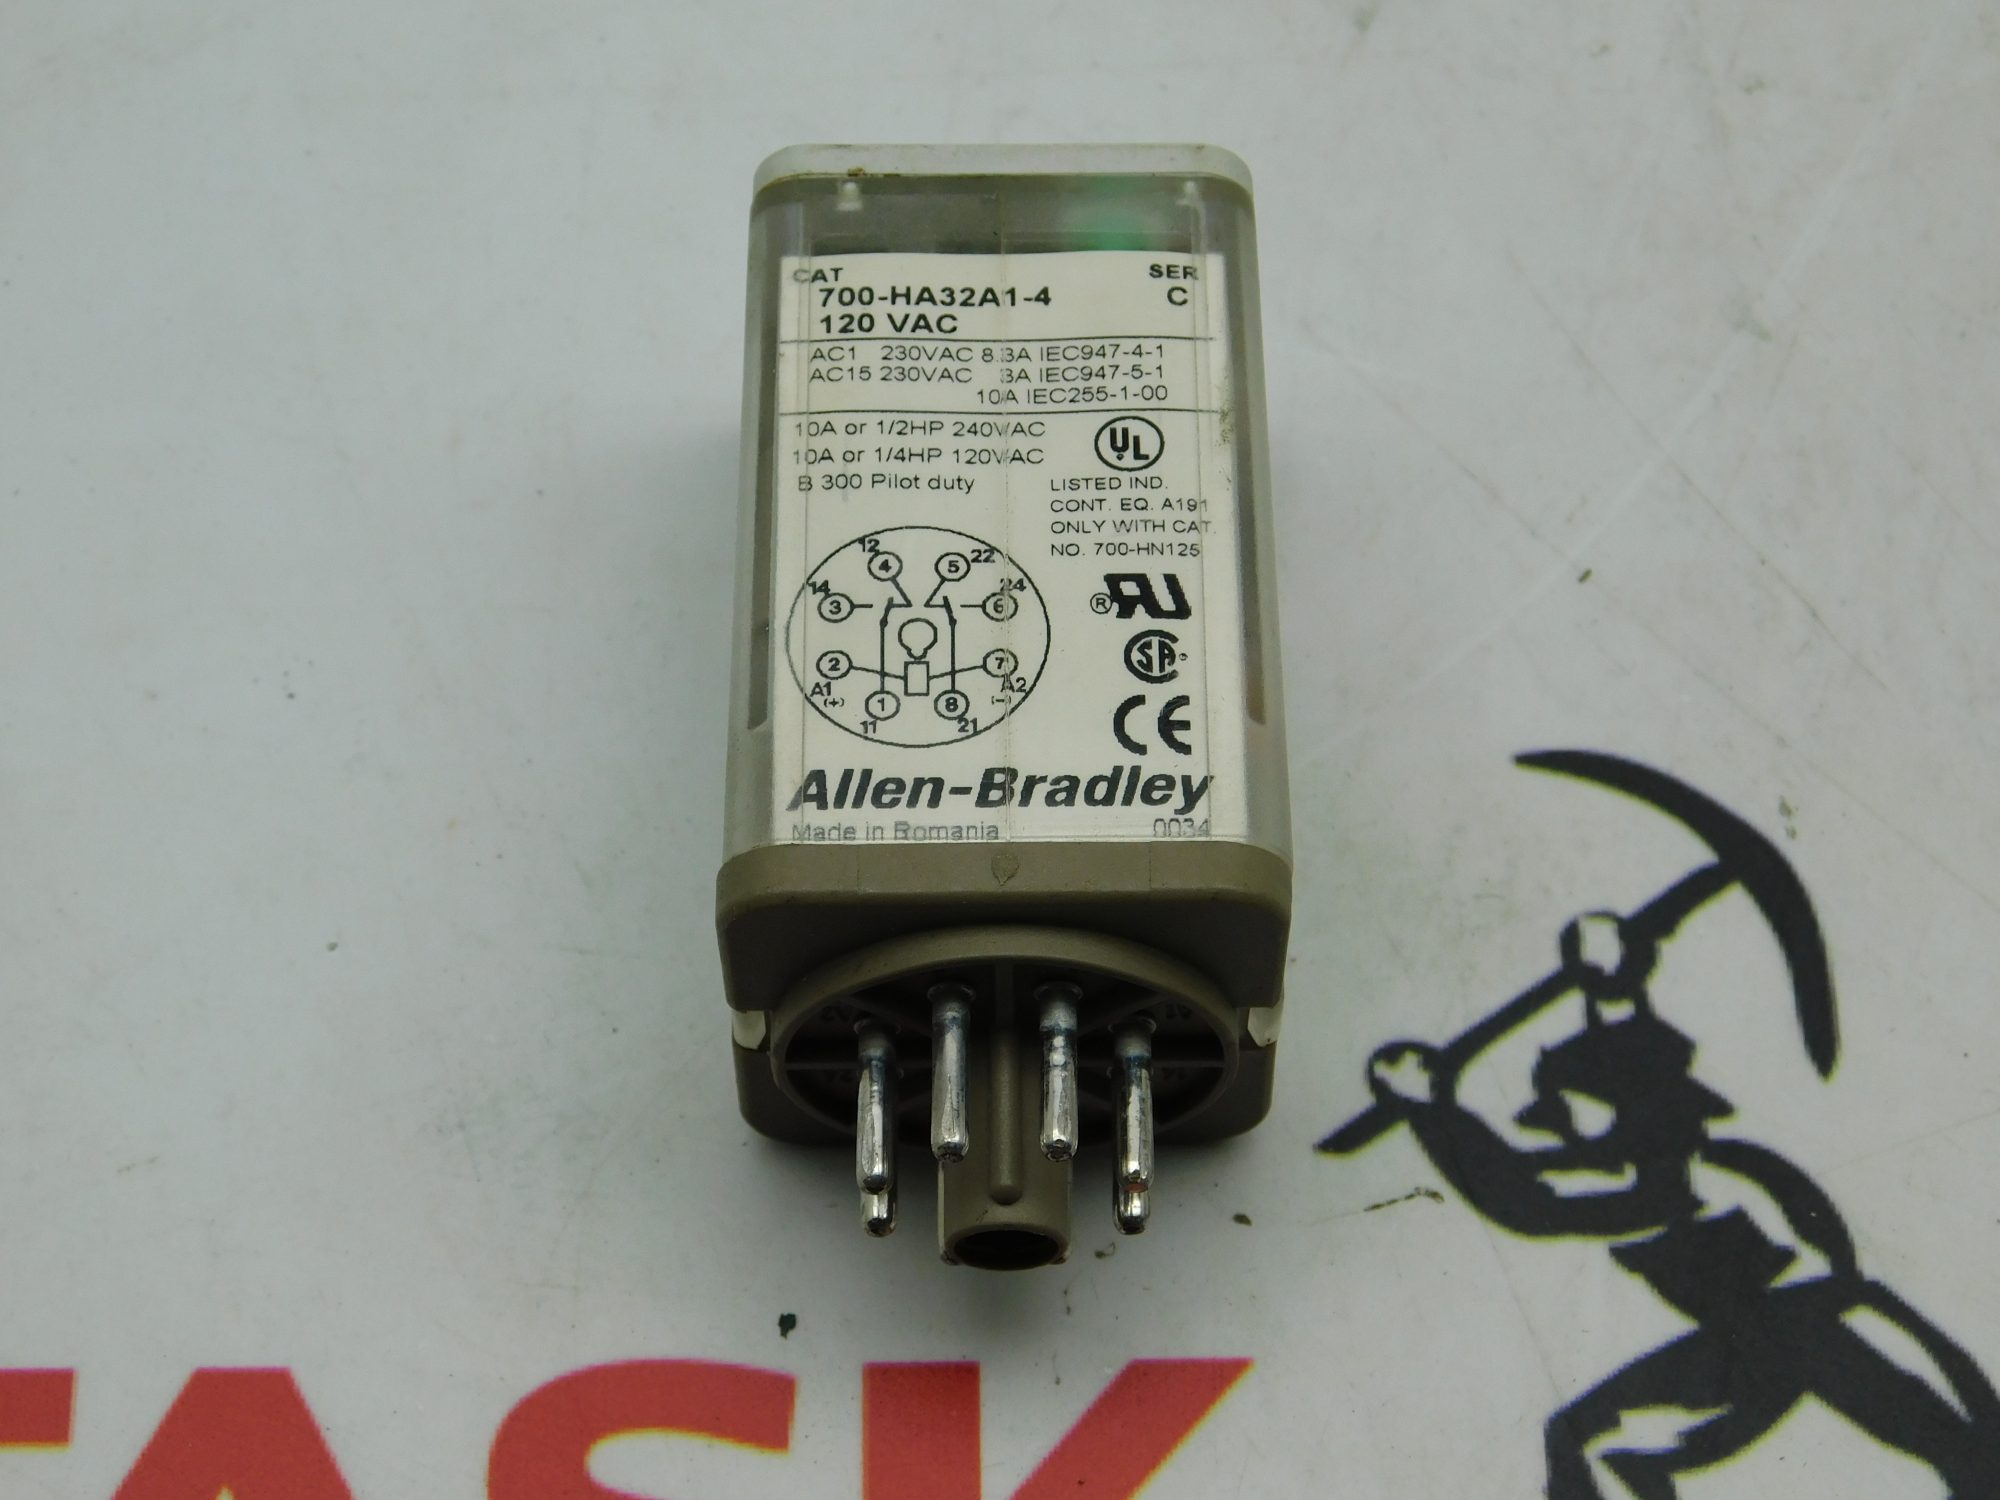 Allen-Bradley CAT No. 700-HA32A1-4 Series C